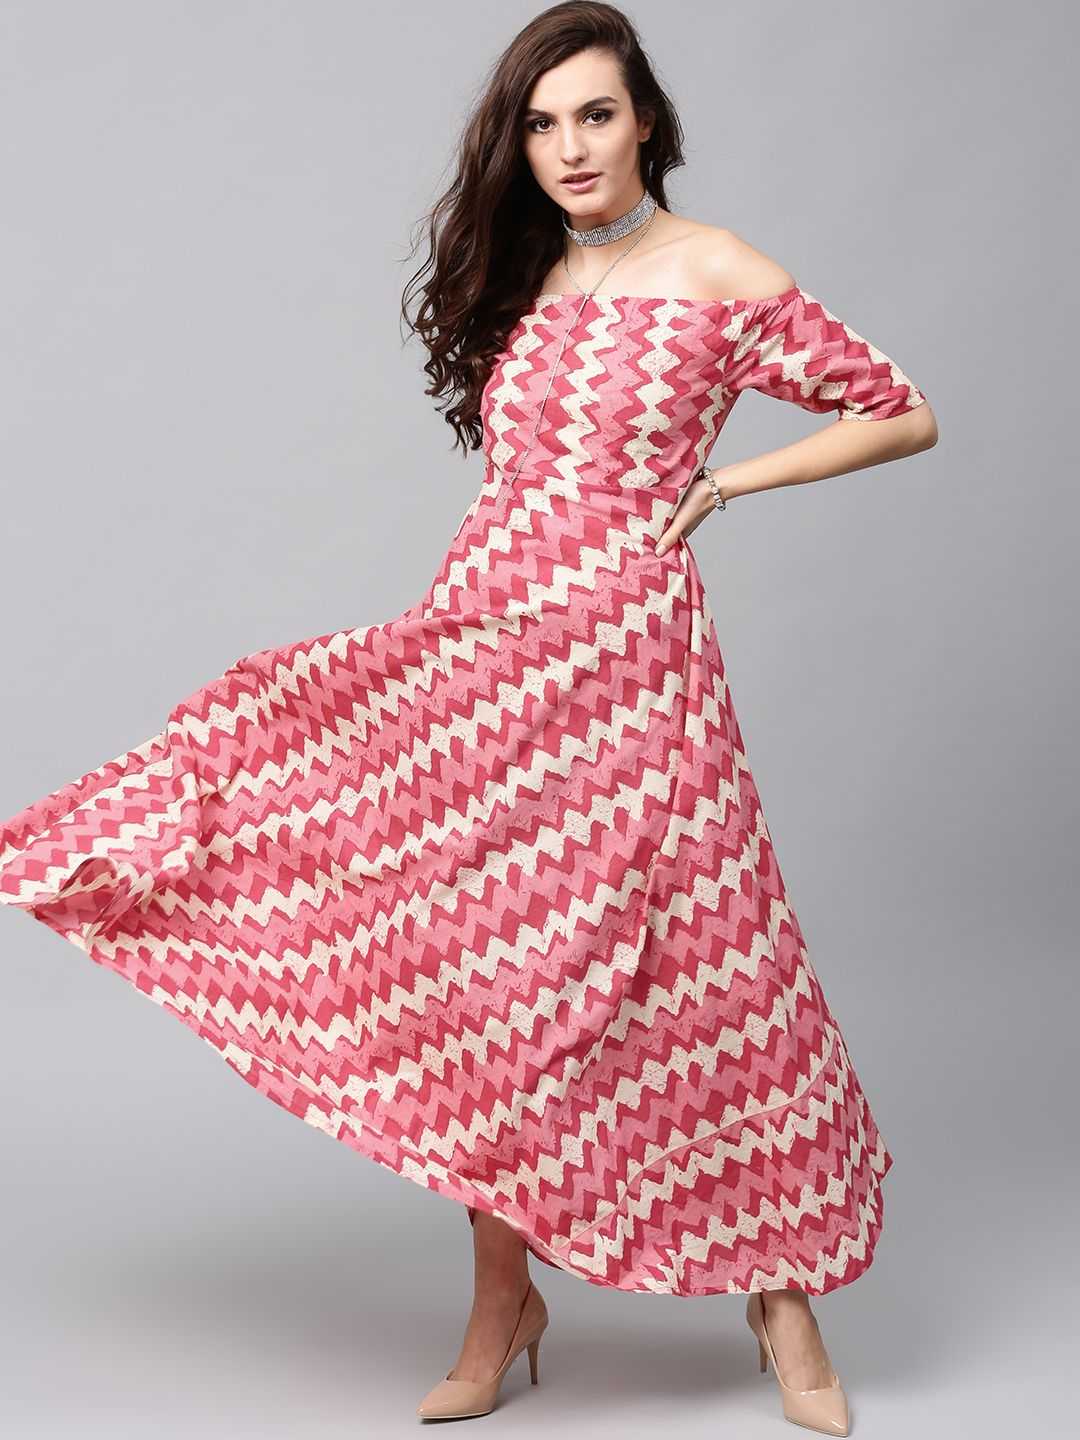 761efb5fcc3 Buy AKS Women Pink   Cream Coloured Printed Off Shoulder Maxi Dress - -  Apparel for Women from AKS at Rs. 849